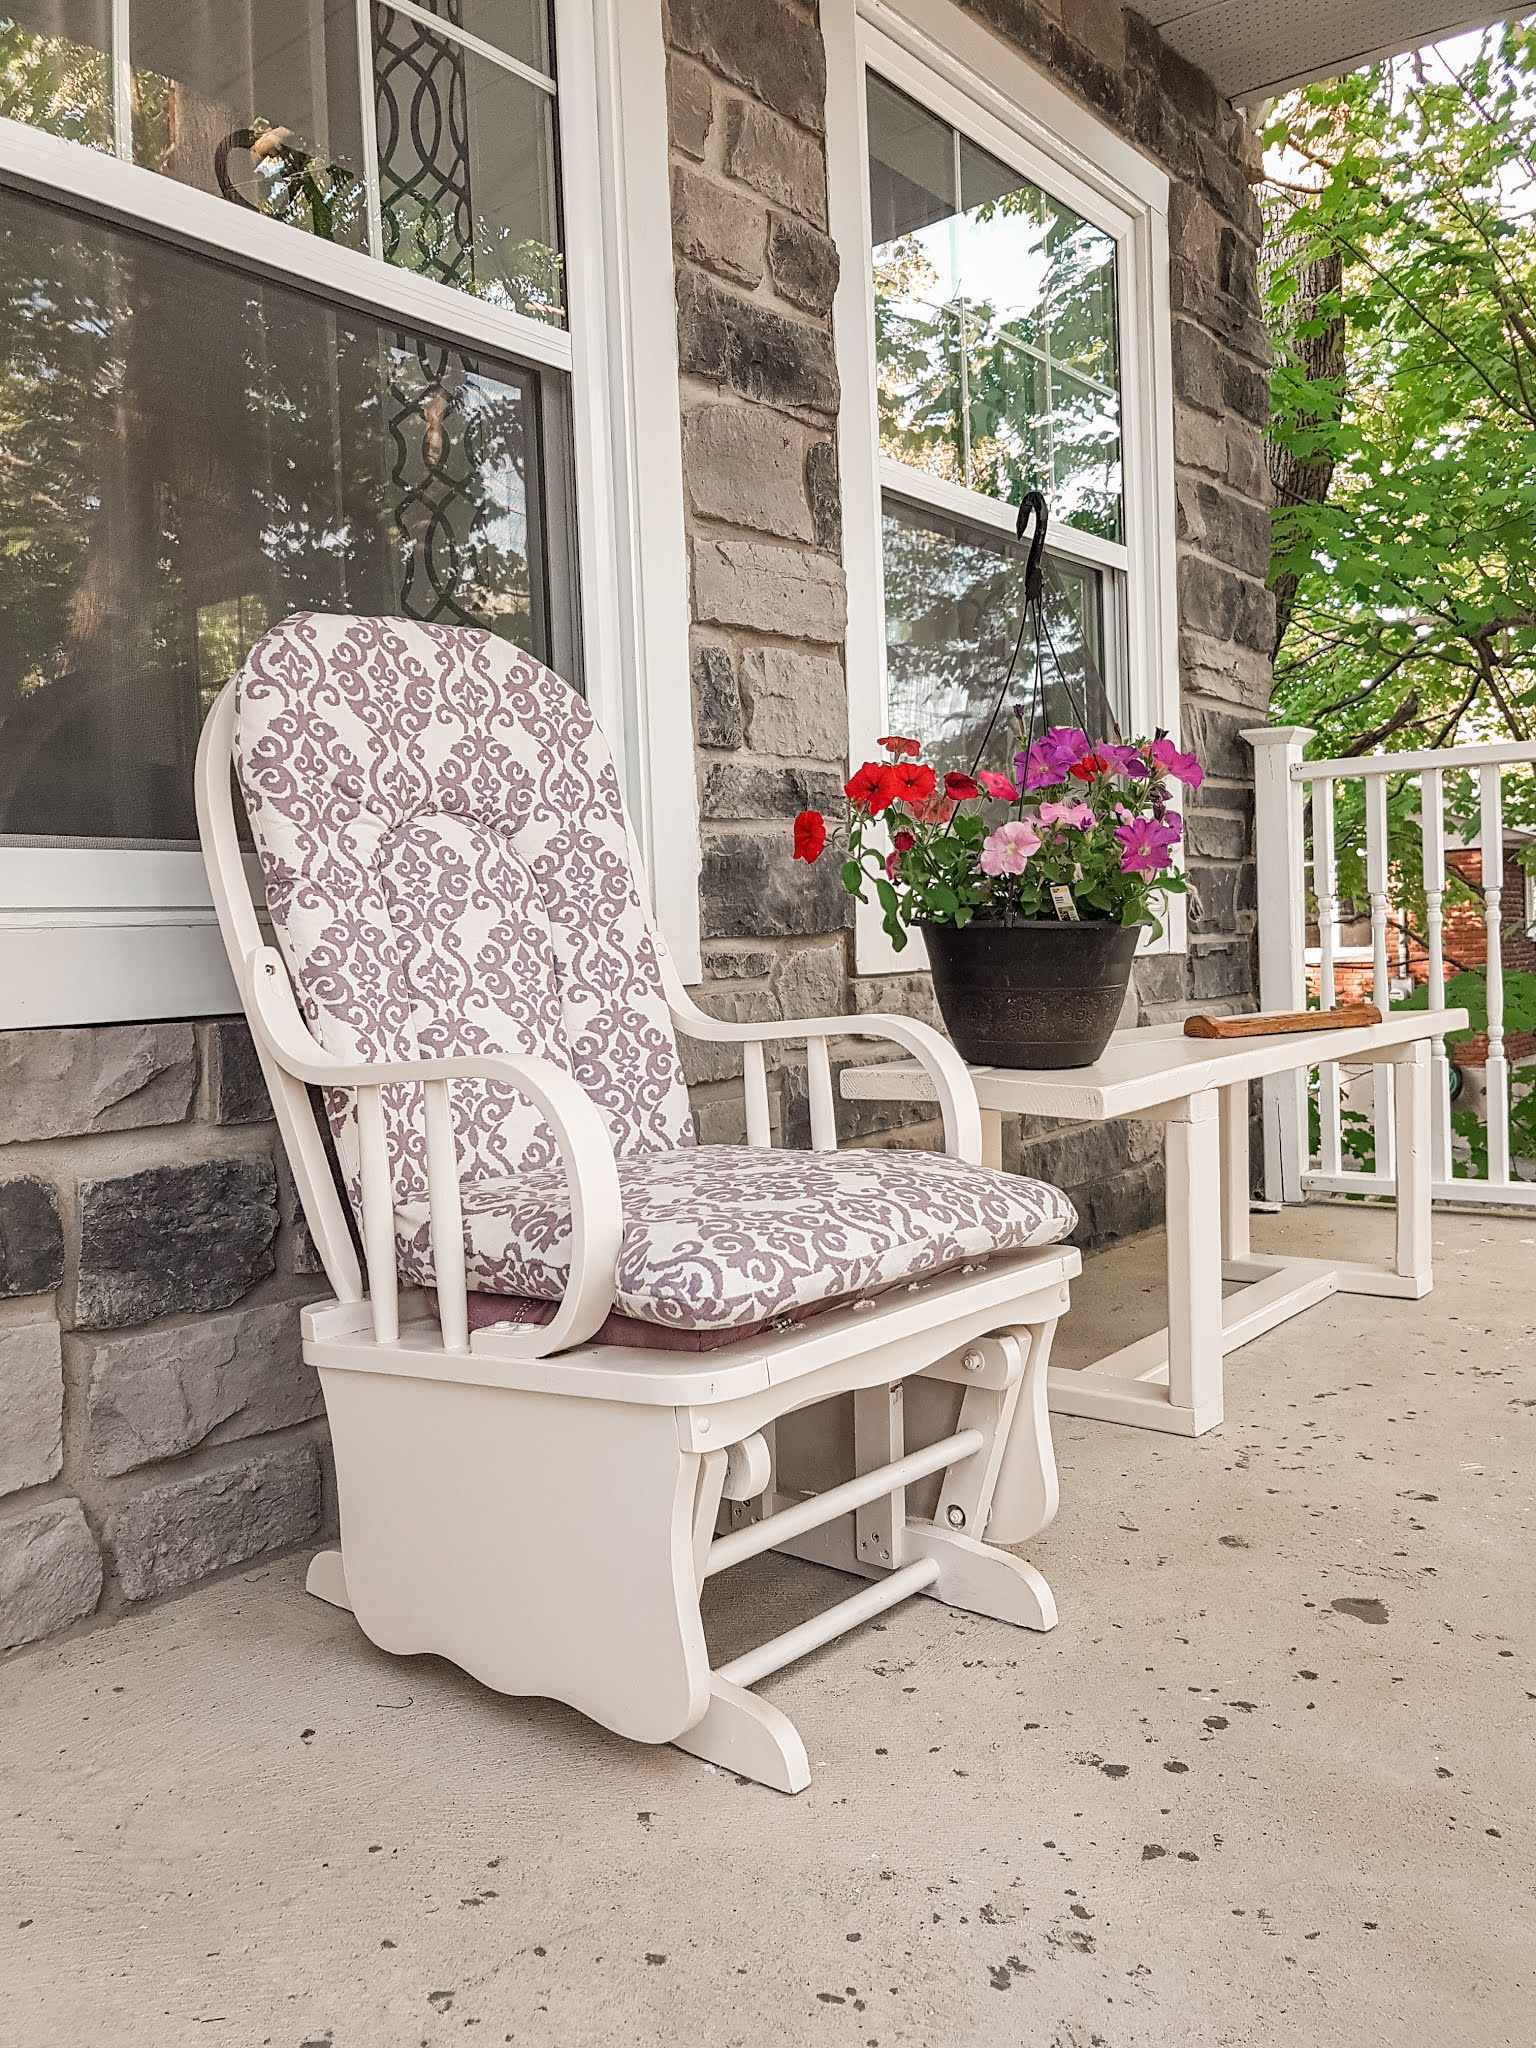 Easy Tutorial on how to refurbish old furniture